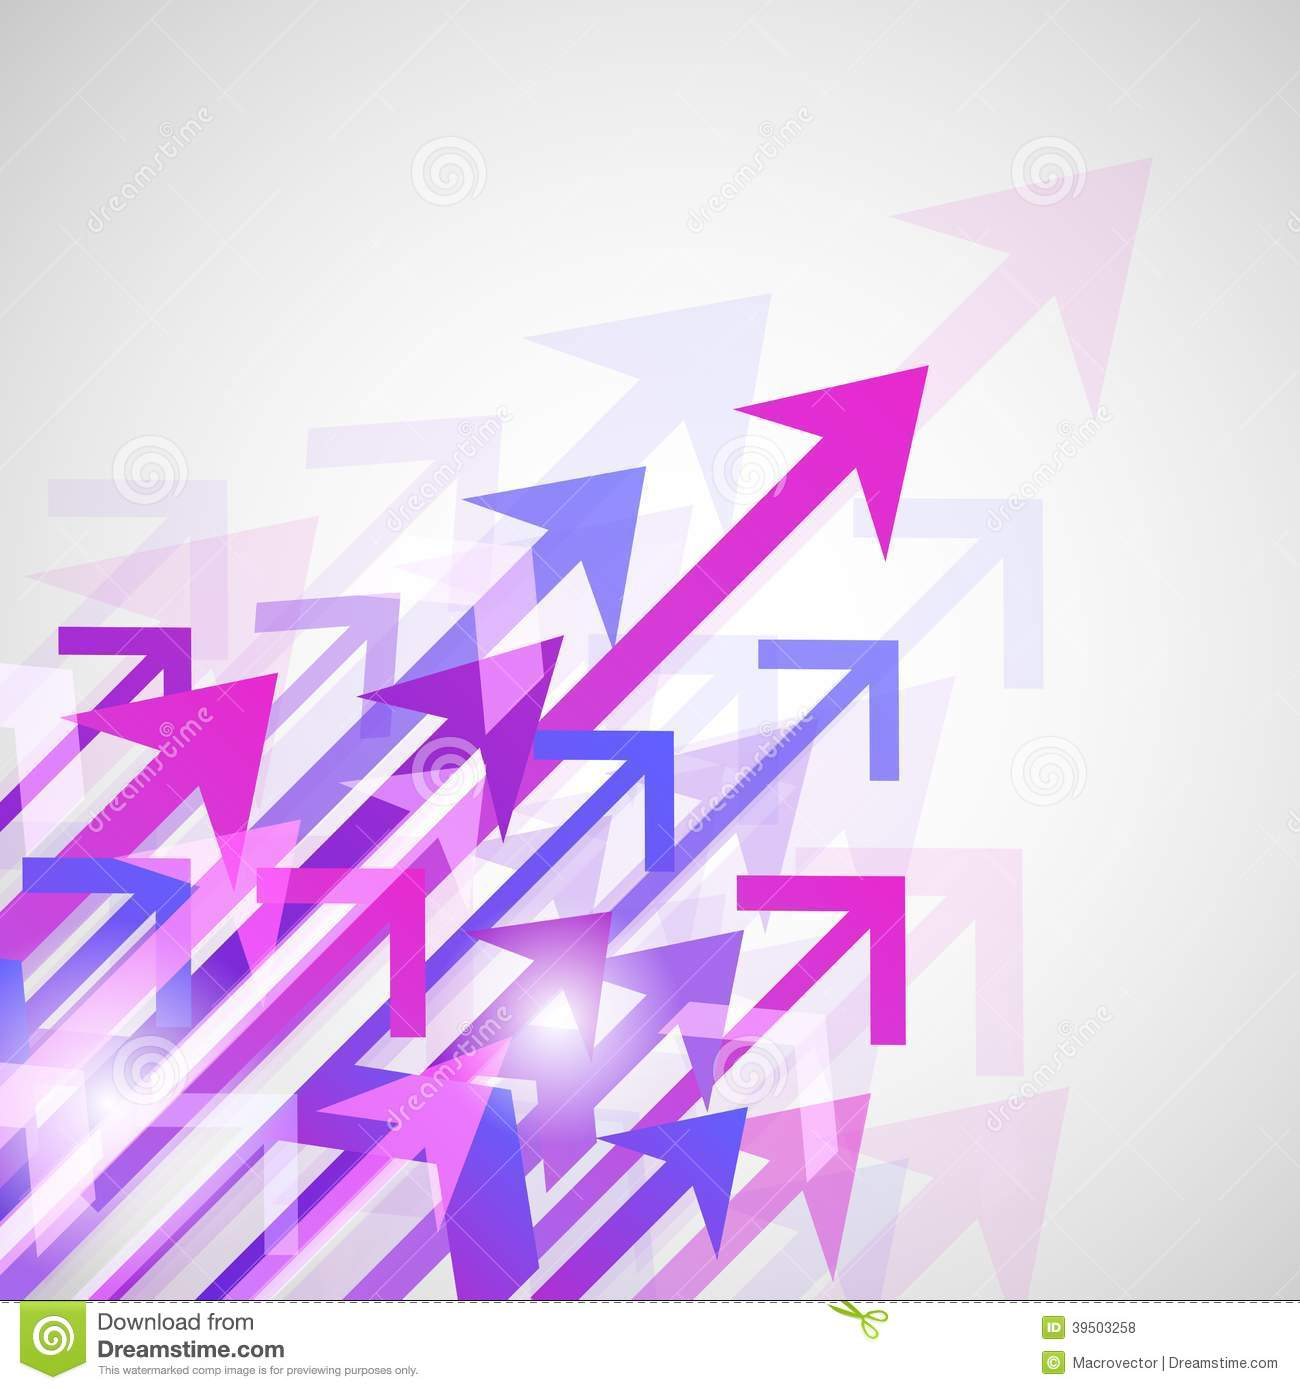 Background arrows print